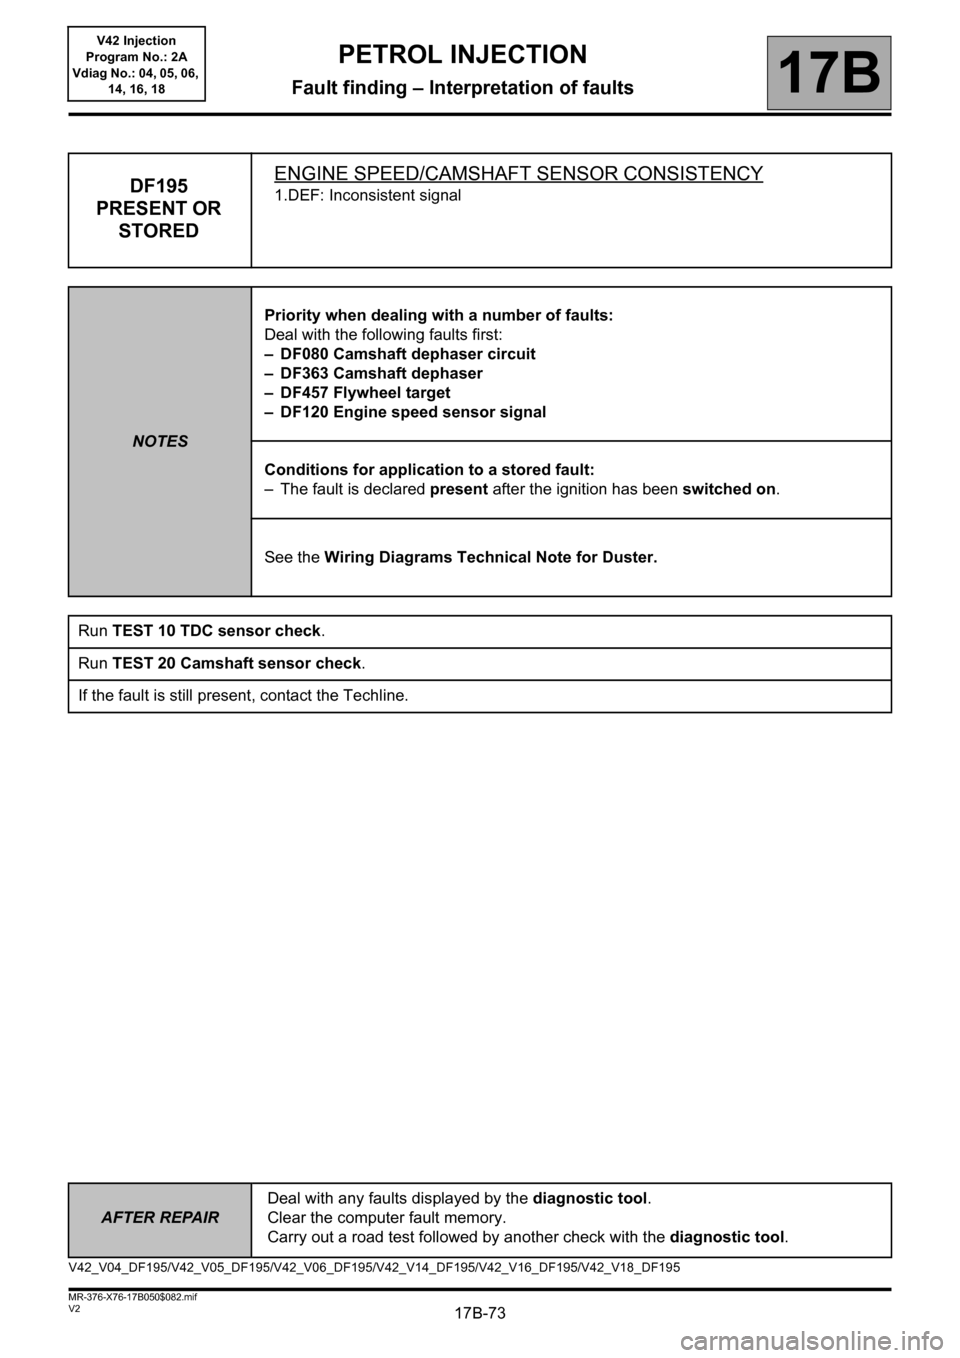 RENAULT KANGOO 2013 X61 / 2.G Petrol V42 Injection Workshop Manual, Page 73